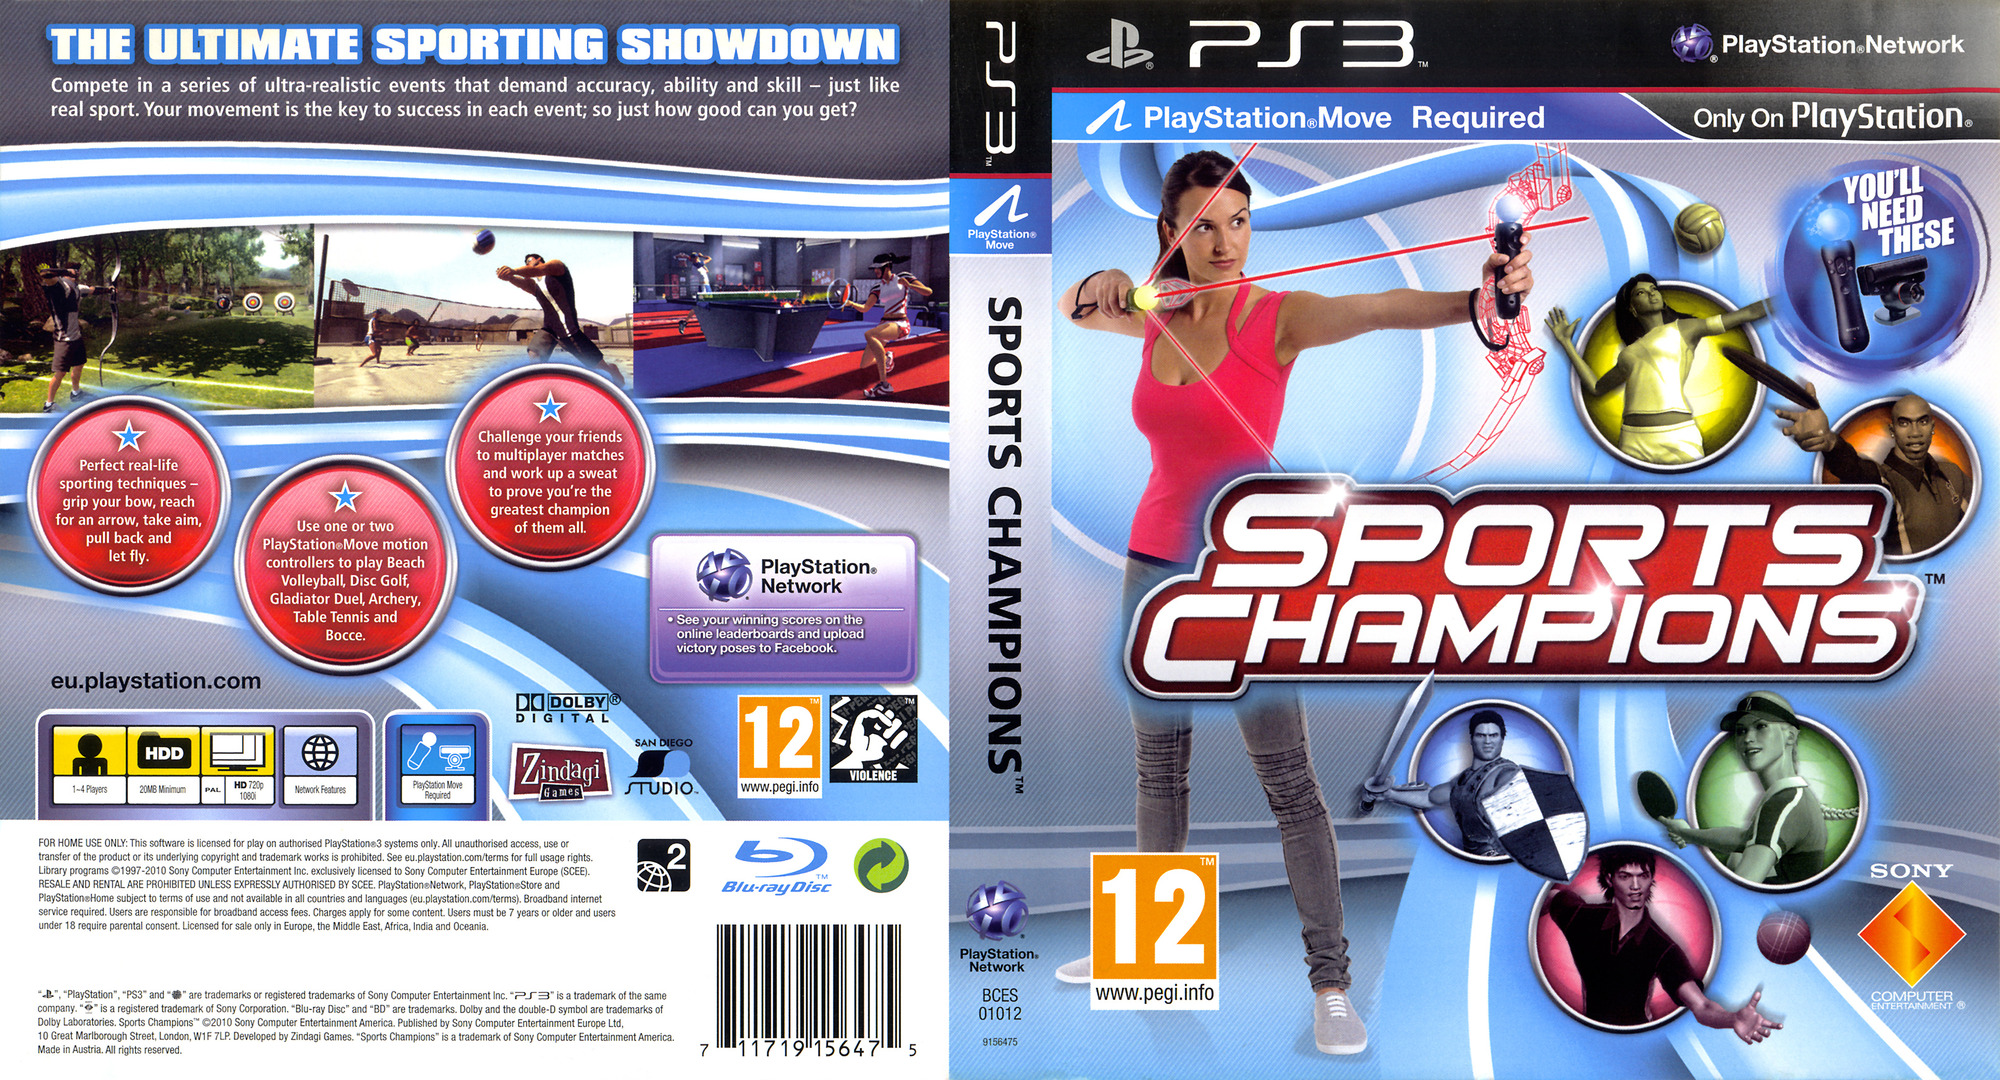 Sports Champions PS3 coverfullHQ (BCES01012)